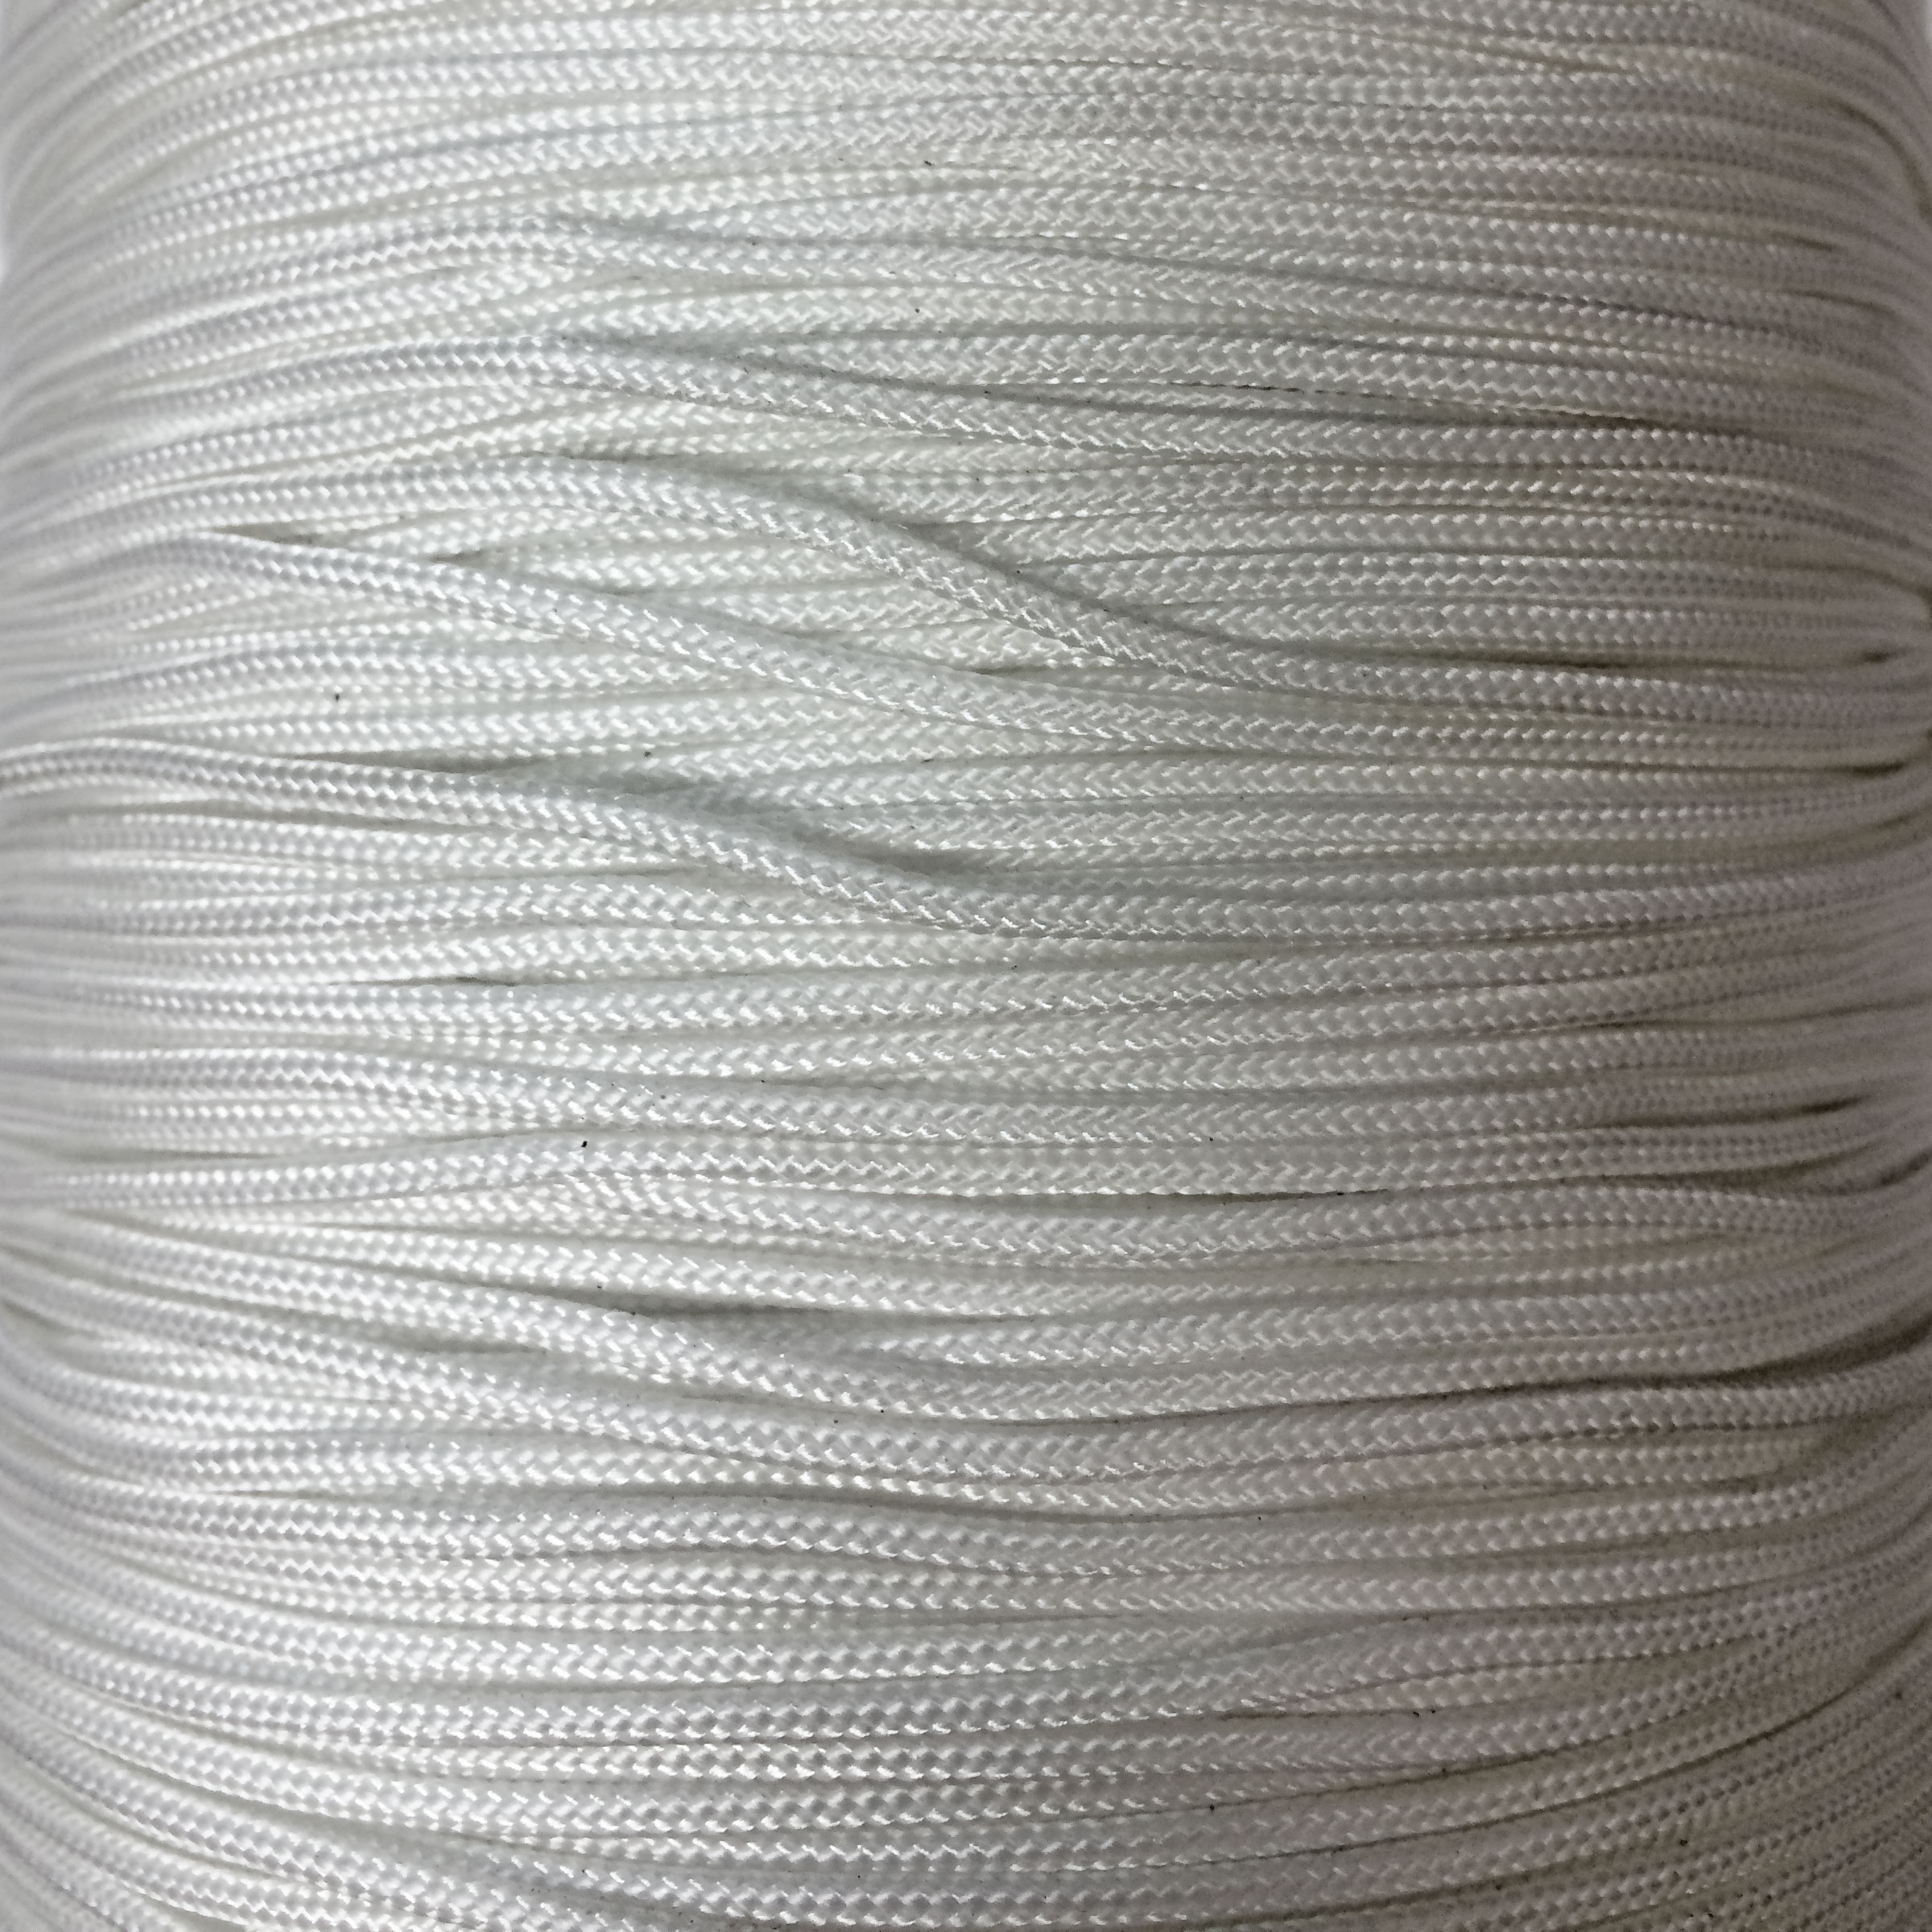 Piping Cording 2mm Nylon